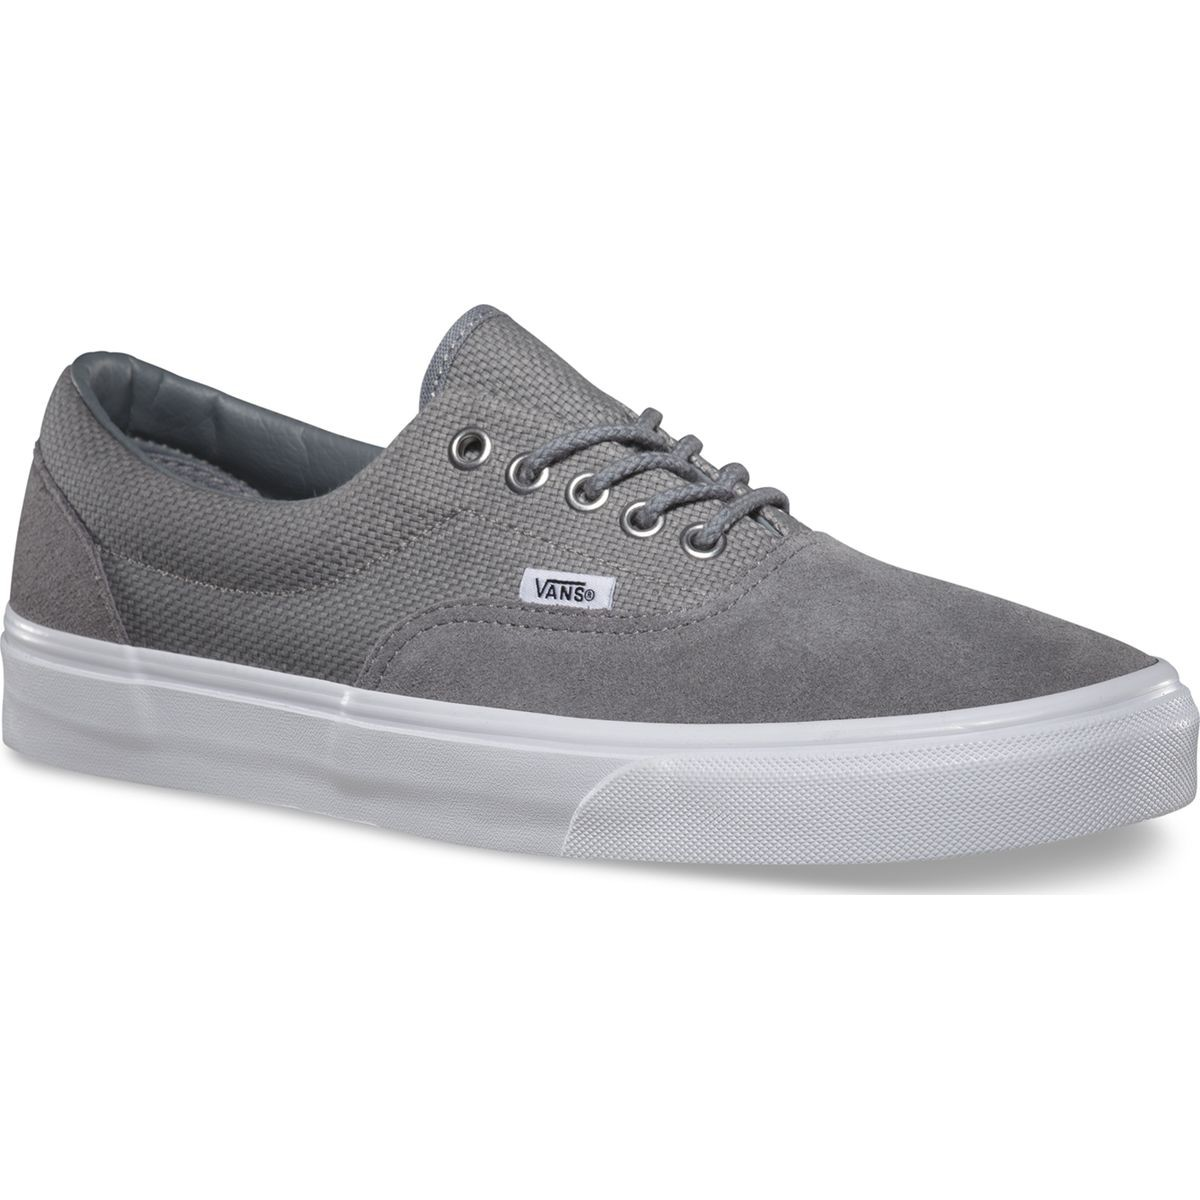 Vans Era Hemp Shoes - Monument / True White